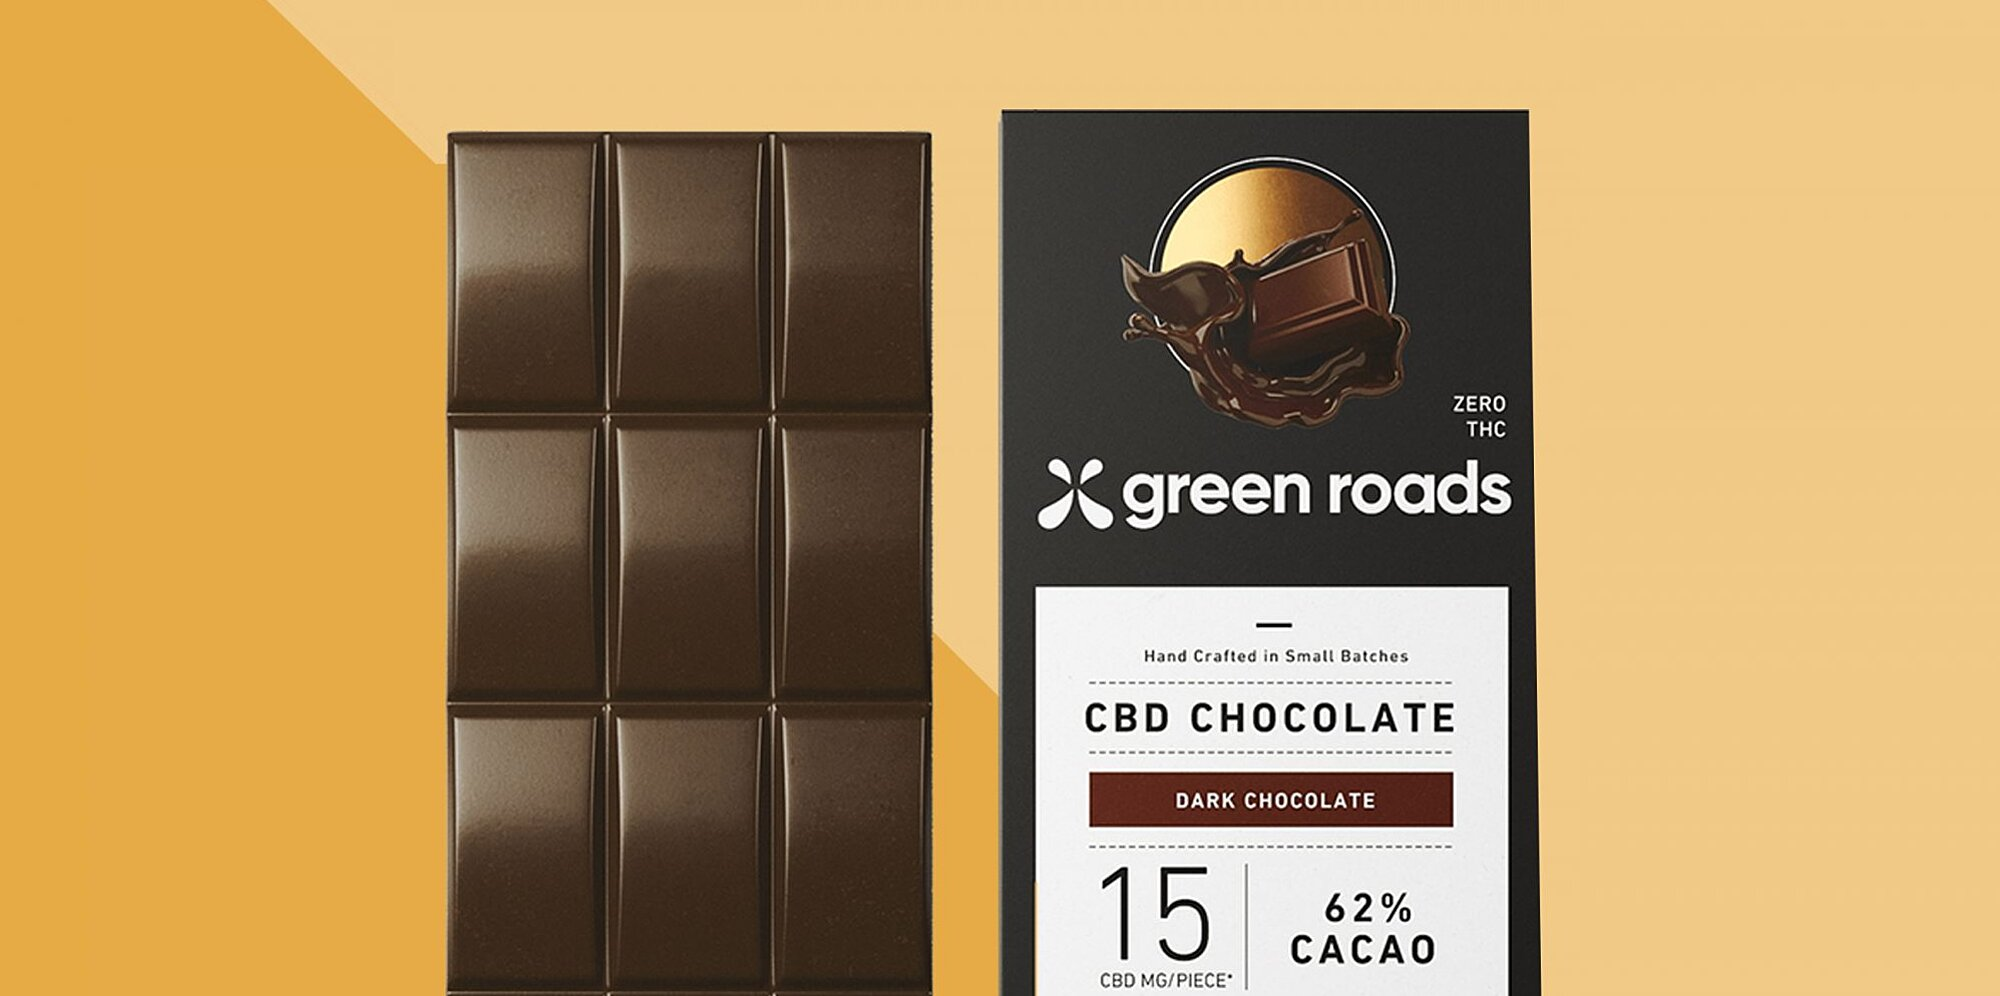 cbd chocolate recipes and best products